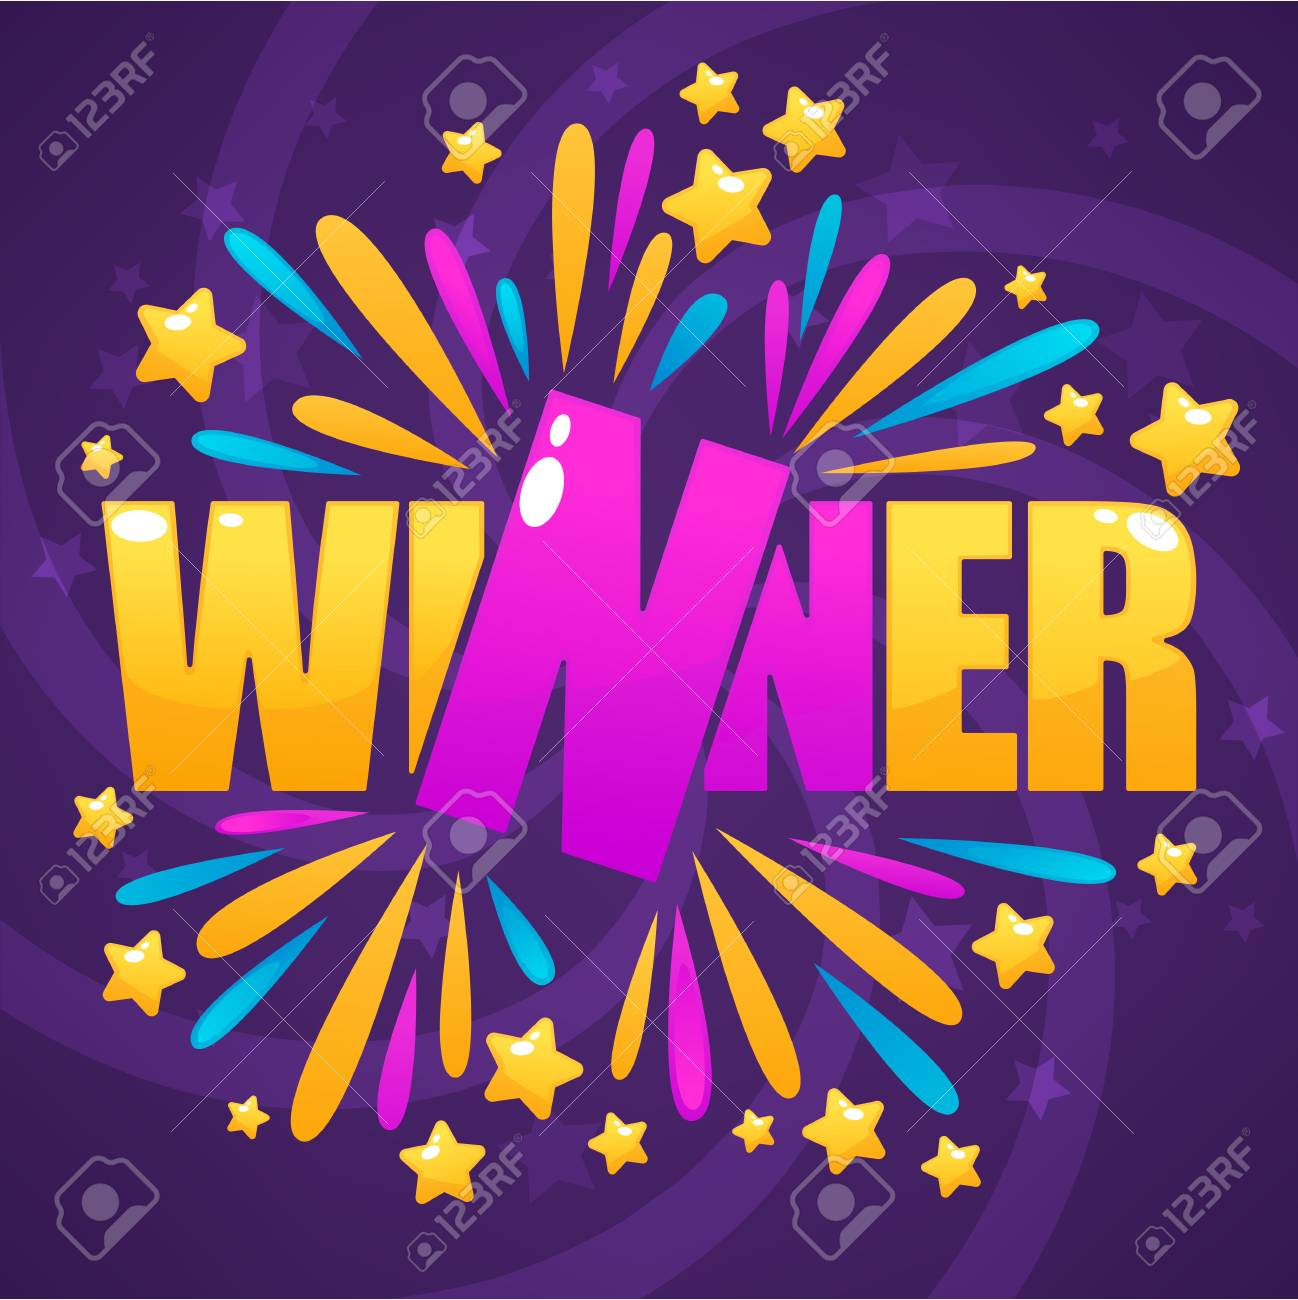 winner congratulation bright and glossy banner with lettering